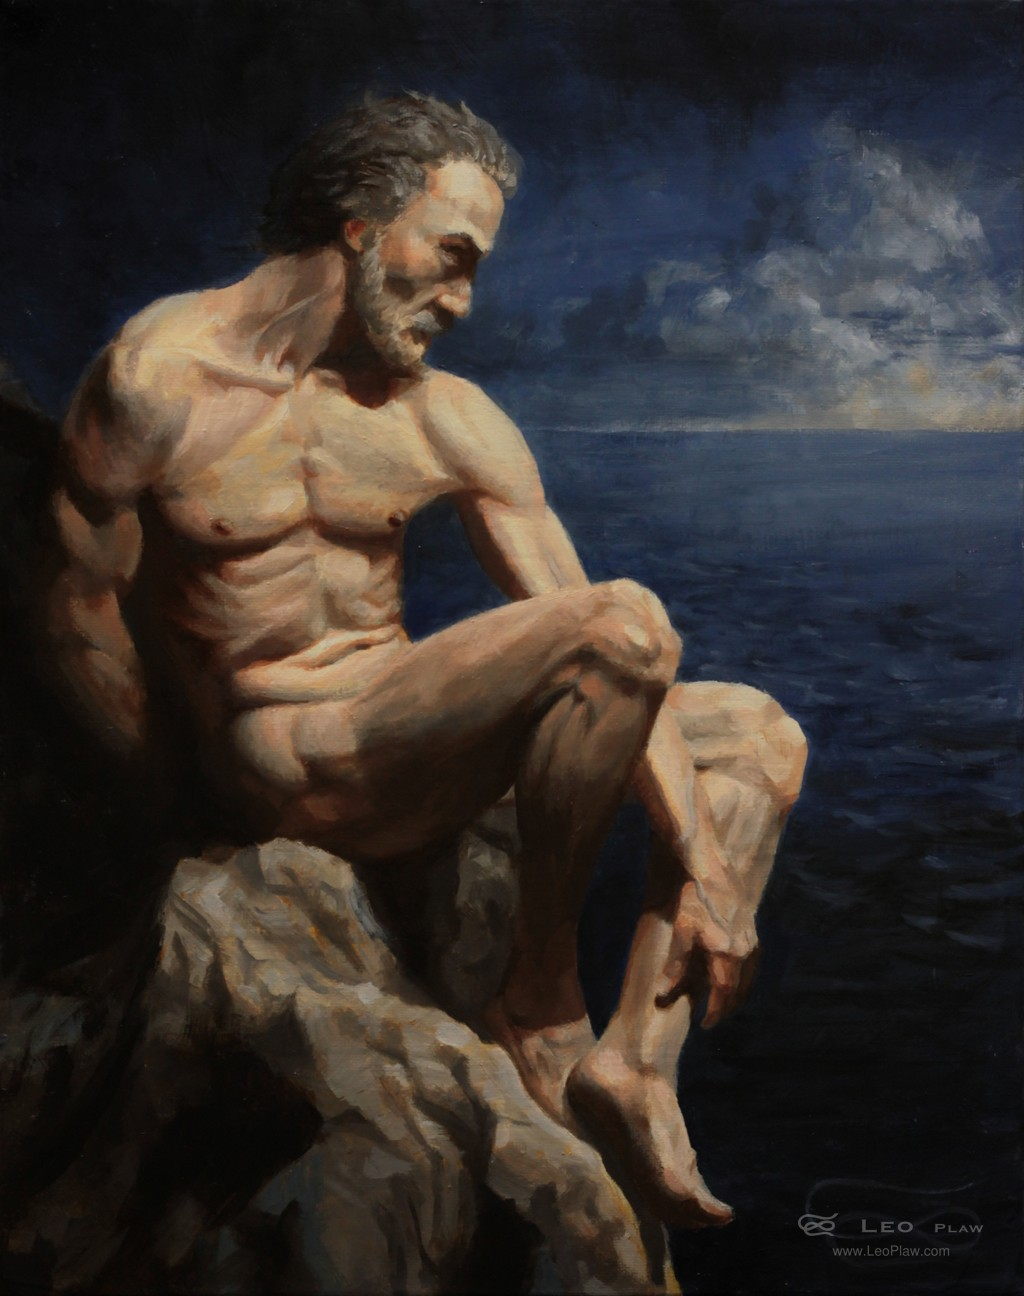 """Marooned Mariner"", Leo Plaw, 24 x 30cm, oil on canvas"